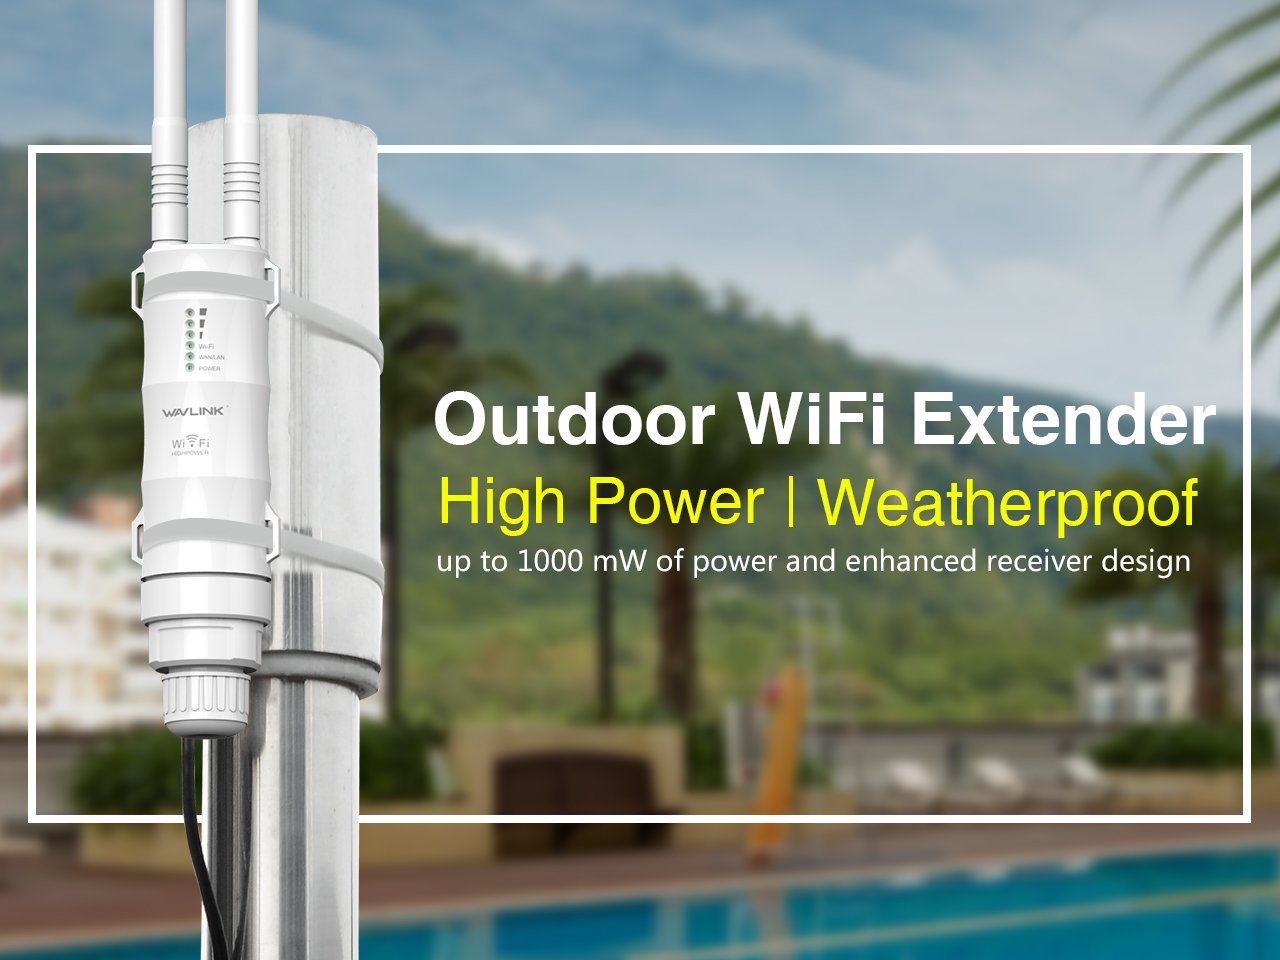 Wisq5300 Is A 5ghz 300mbps Hipower Outdoor Wireless Access Tenda O3 Cpe 24ghz Amazoncom Wavlink High Power Weatherproof Point Repeater Router Wisp 150mbps 433mbps Dual Polarized 1000mw 28dbm